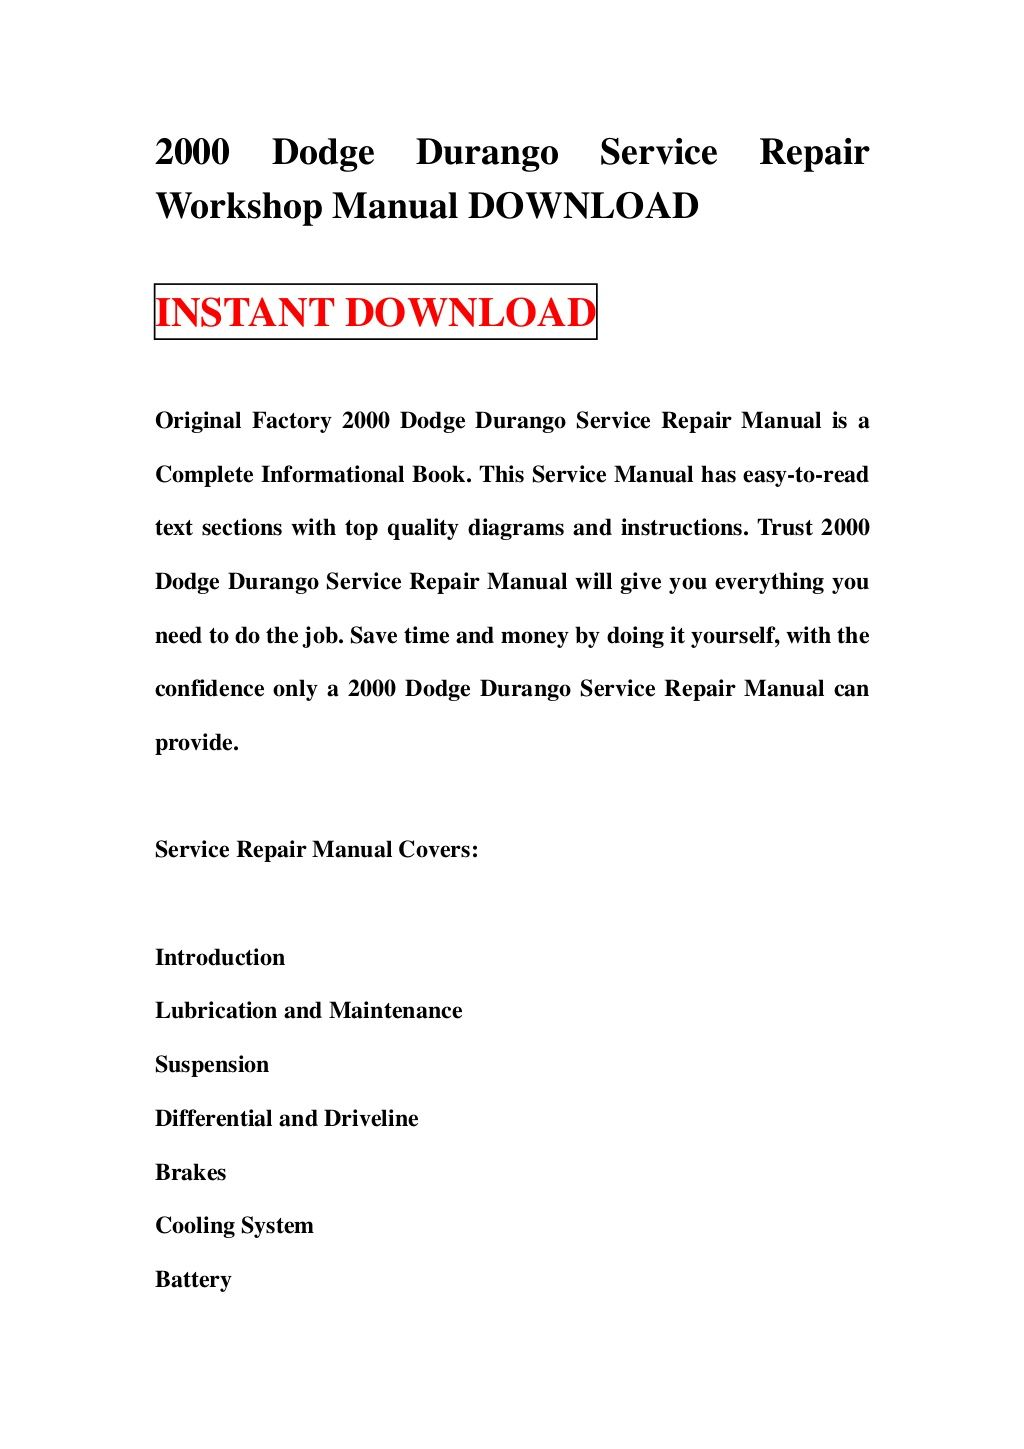 2000-dodge-durango-service-repair-workshop-manual-download-16767947 by  witeyayealaln via Slideshare